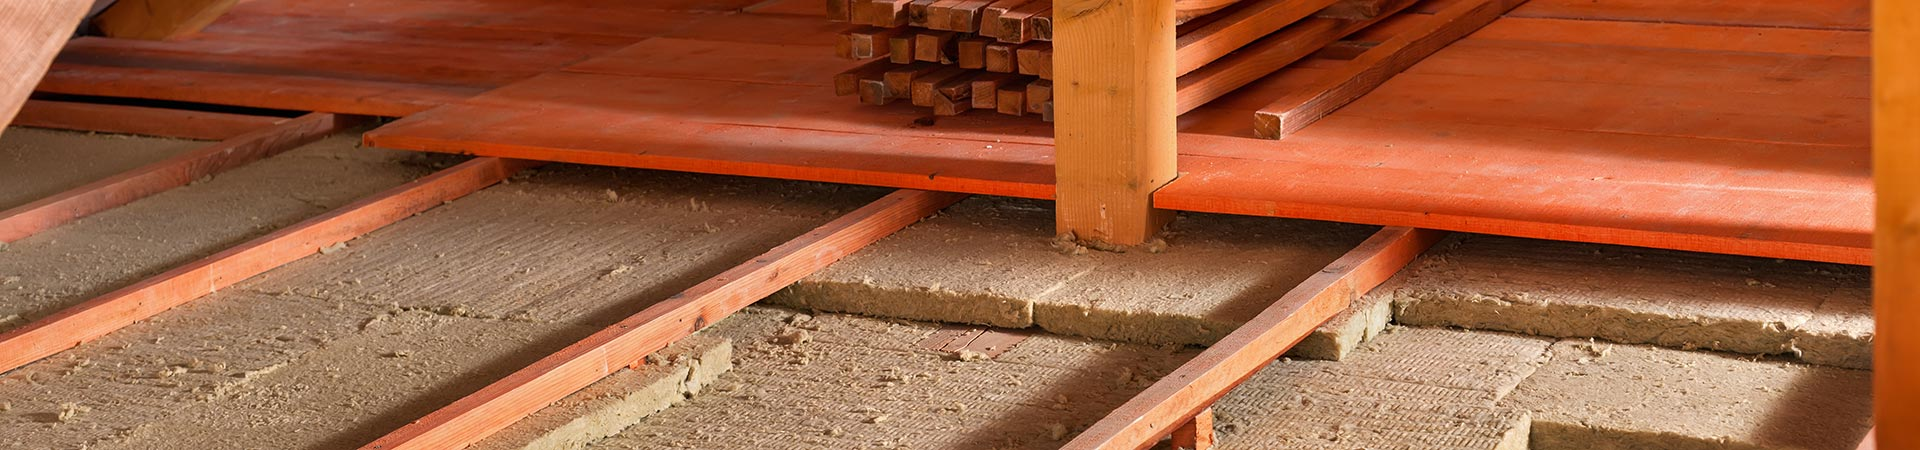 attic insulation floorboards